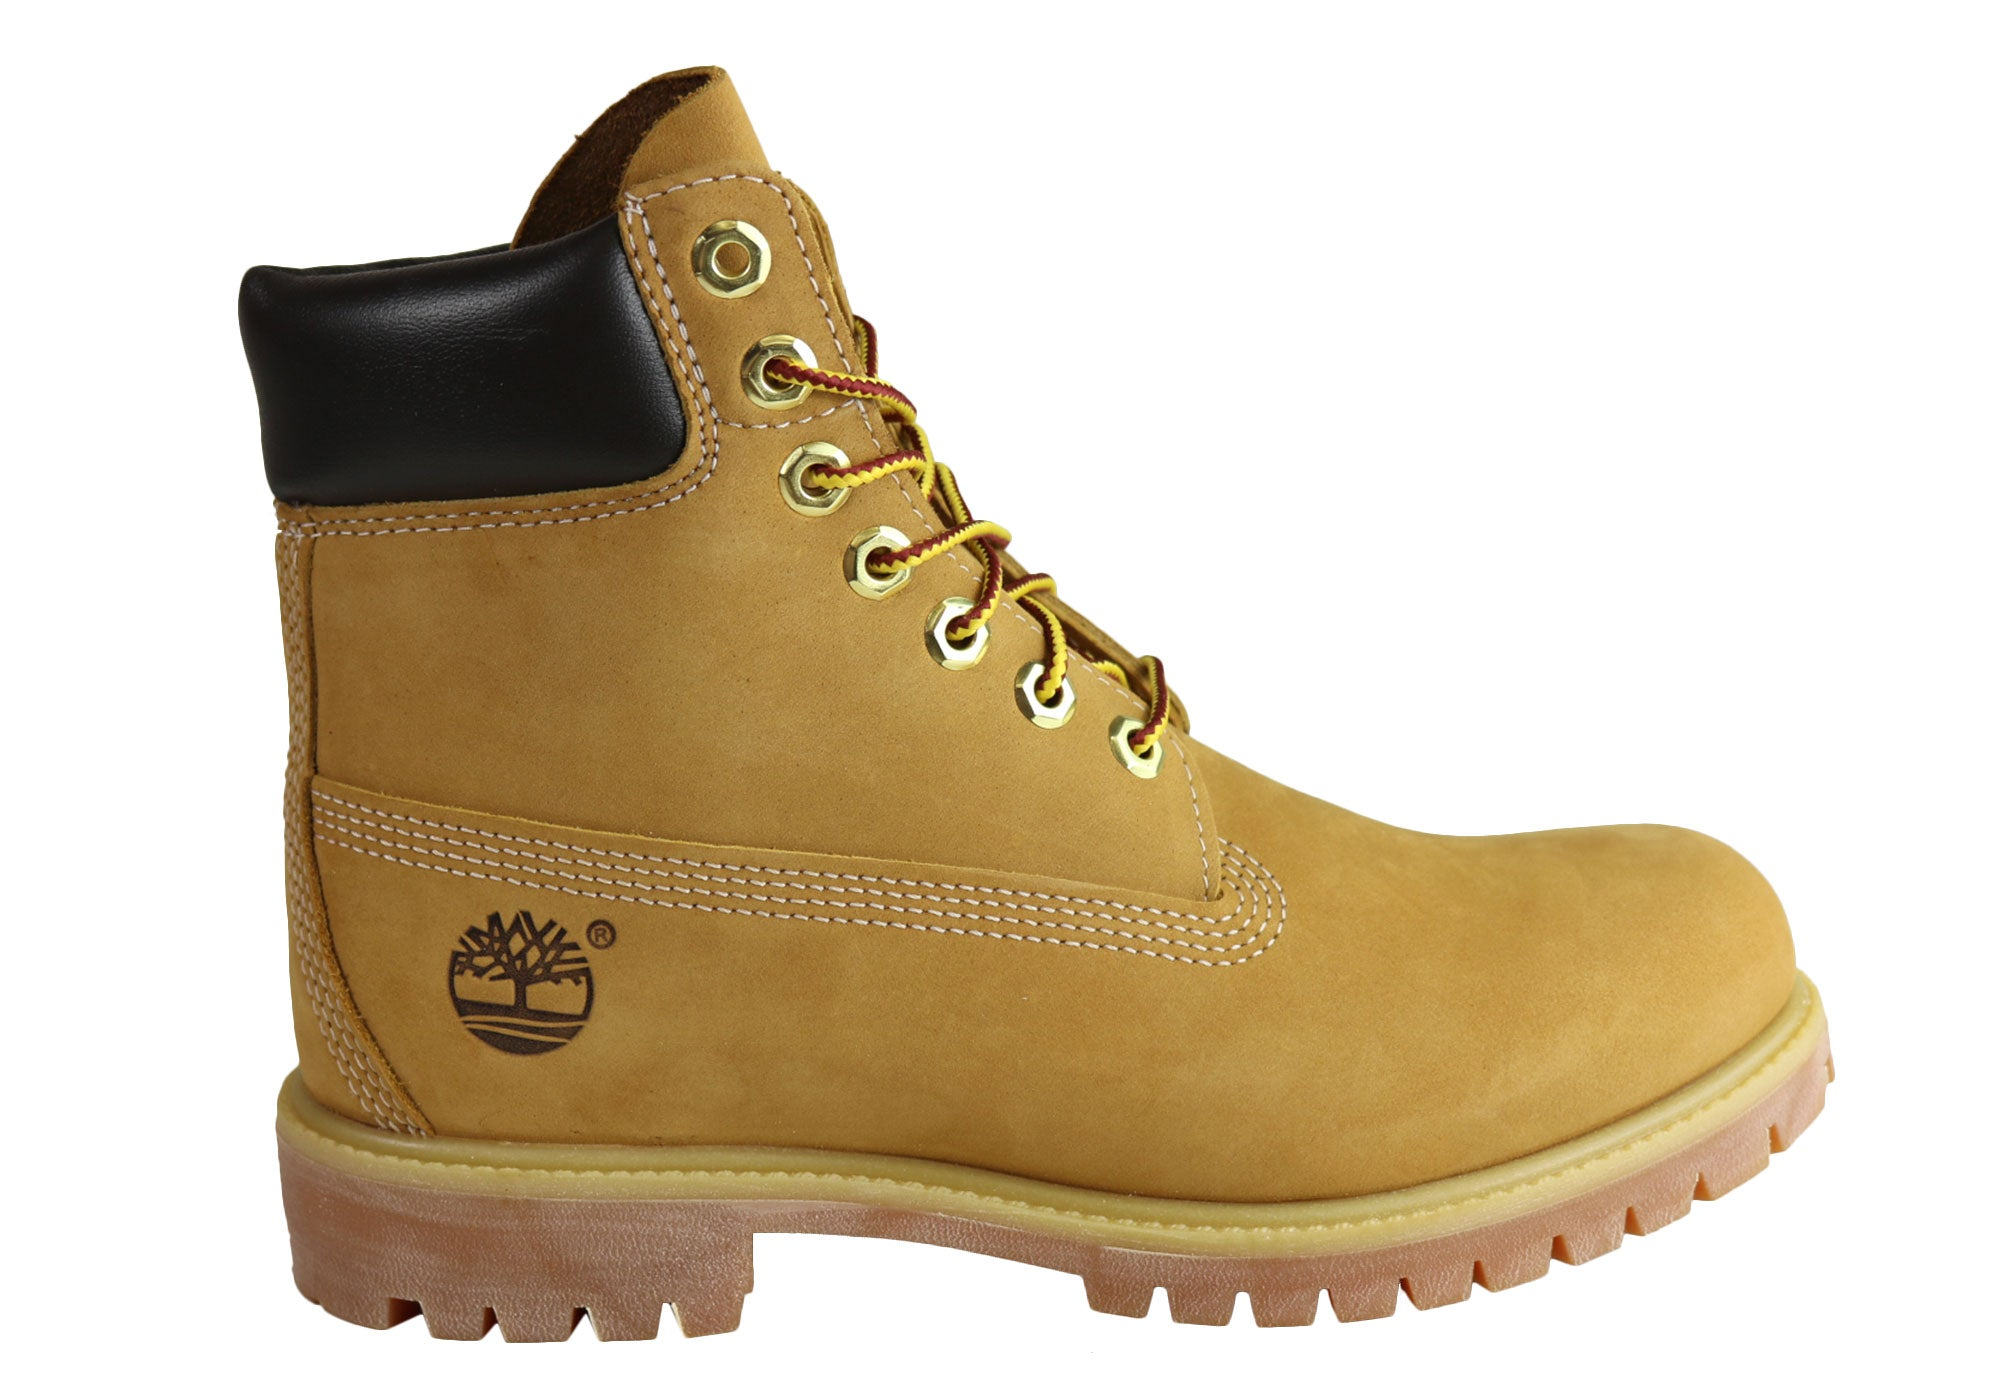 NEW-TIMBERLAND-MENS-COMFORTABLE-LACE-UP-6-INCH-PREMIUM-WATERPROOF-BOOTS thumbnail 5